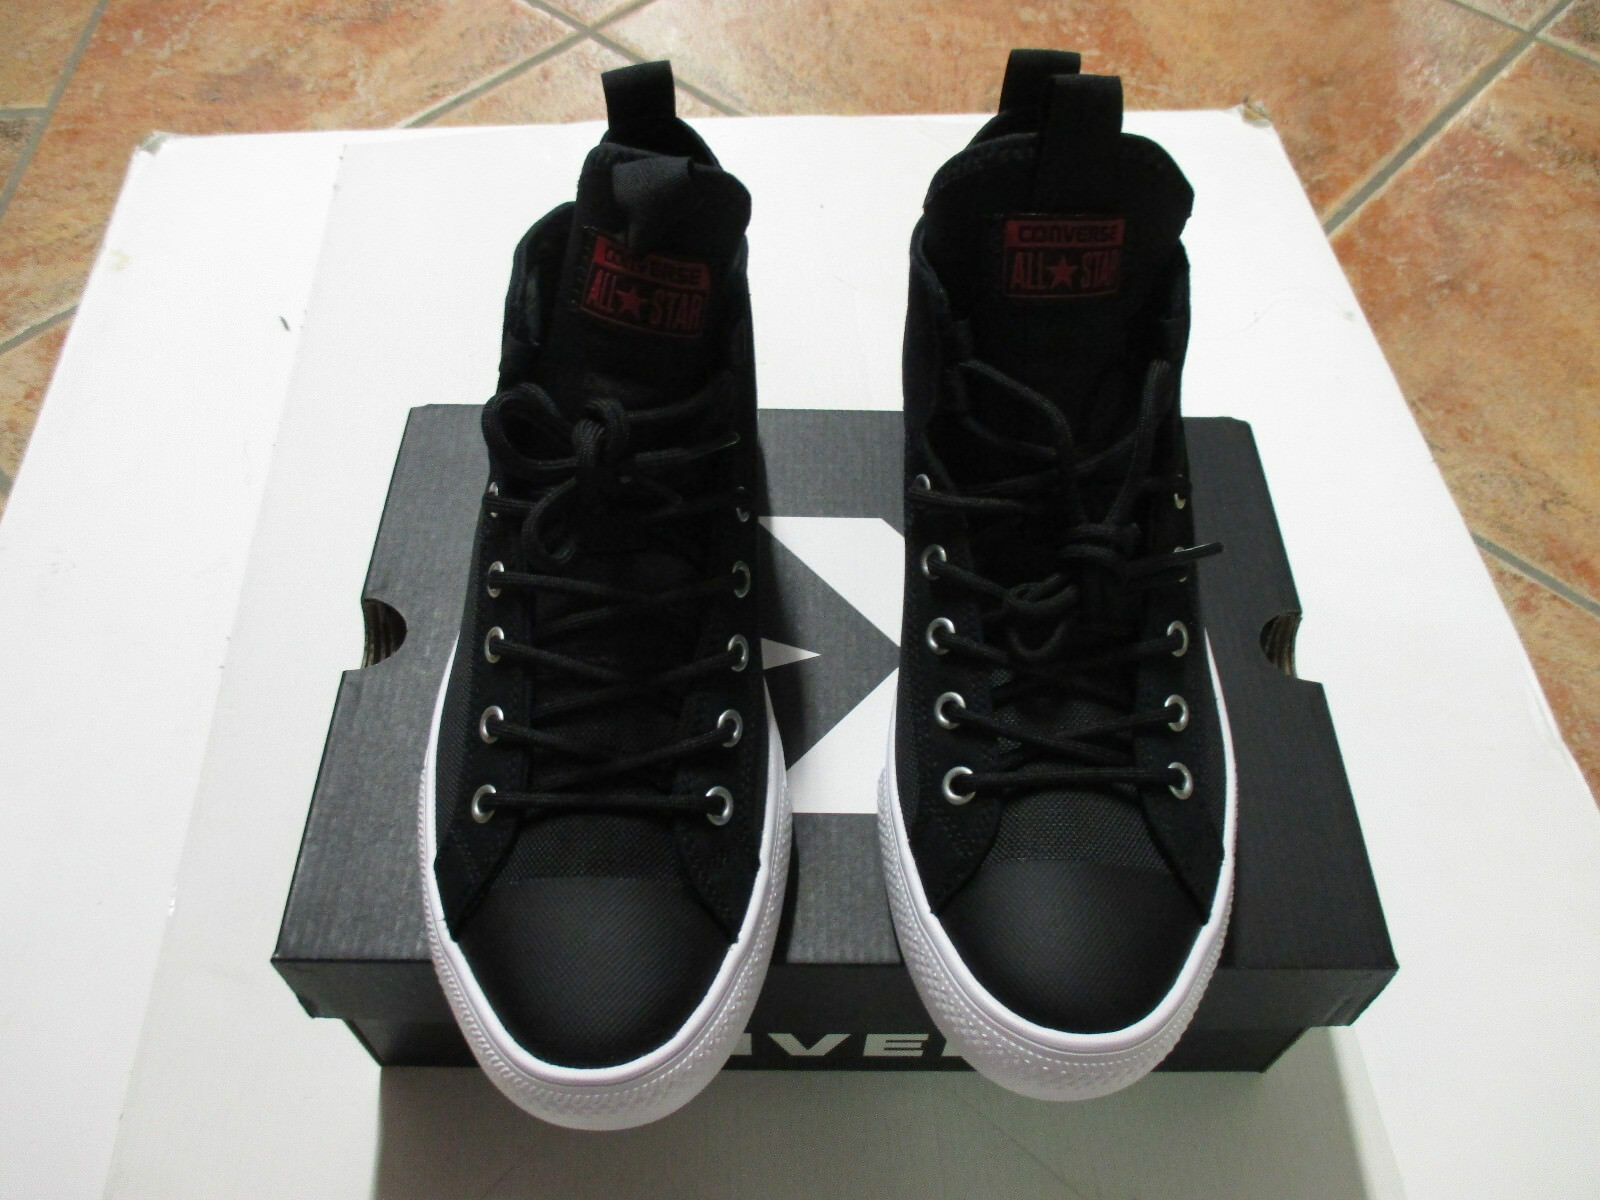 Converse Chuck Taylor All Star Ultra MID Gr 40 Black Red White 159630C Sneaker